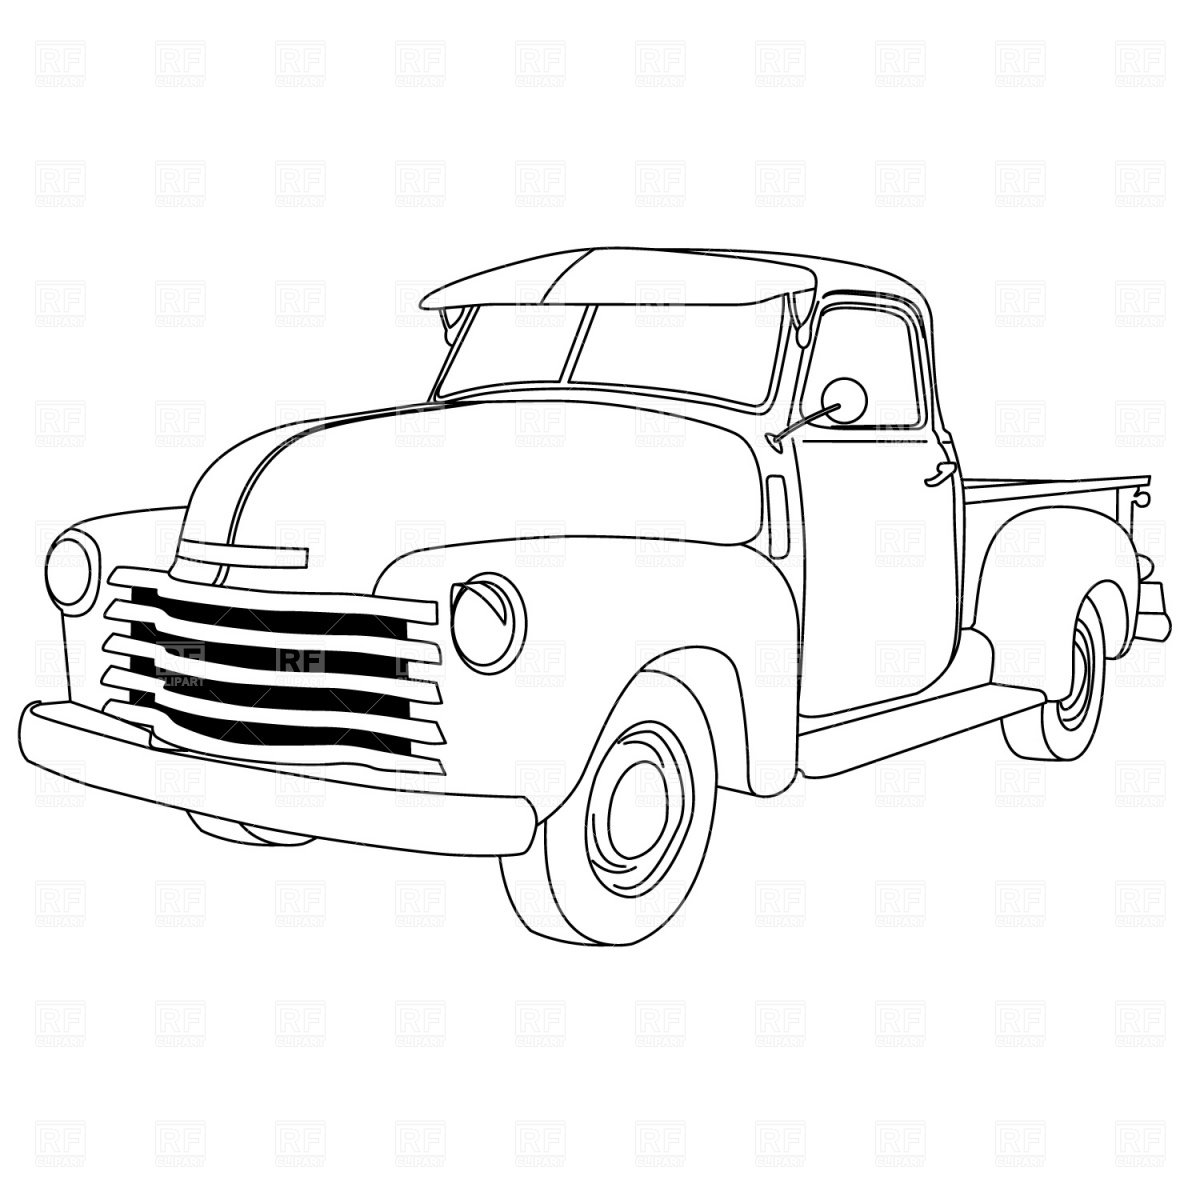 220249 Looking For An Outline Of A 1st Gen Cooper Or Cooper S likewise Cool Car Coloring Pages also 539306124104193533 together with Truck Coloring Sheets 15 07 2018 likewise 501518108477618714. on old chevy truck drawings front